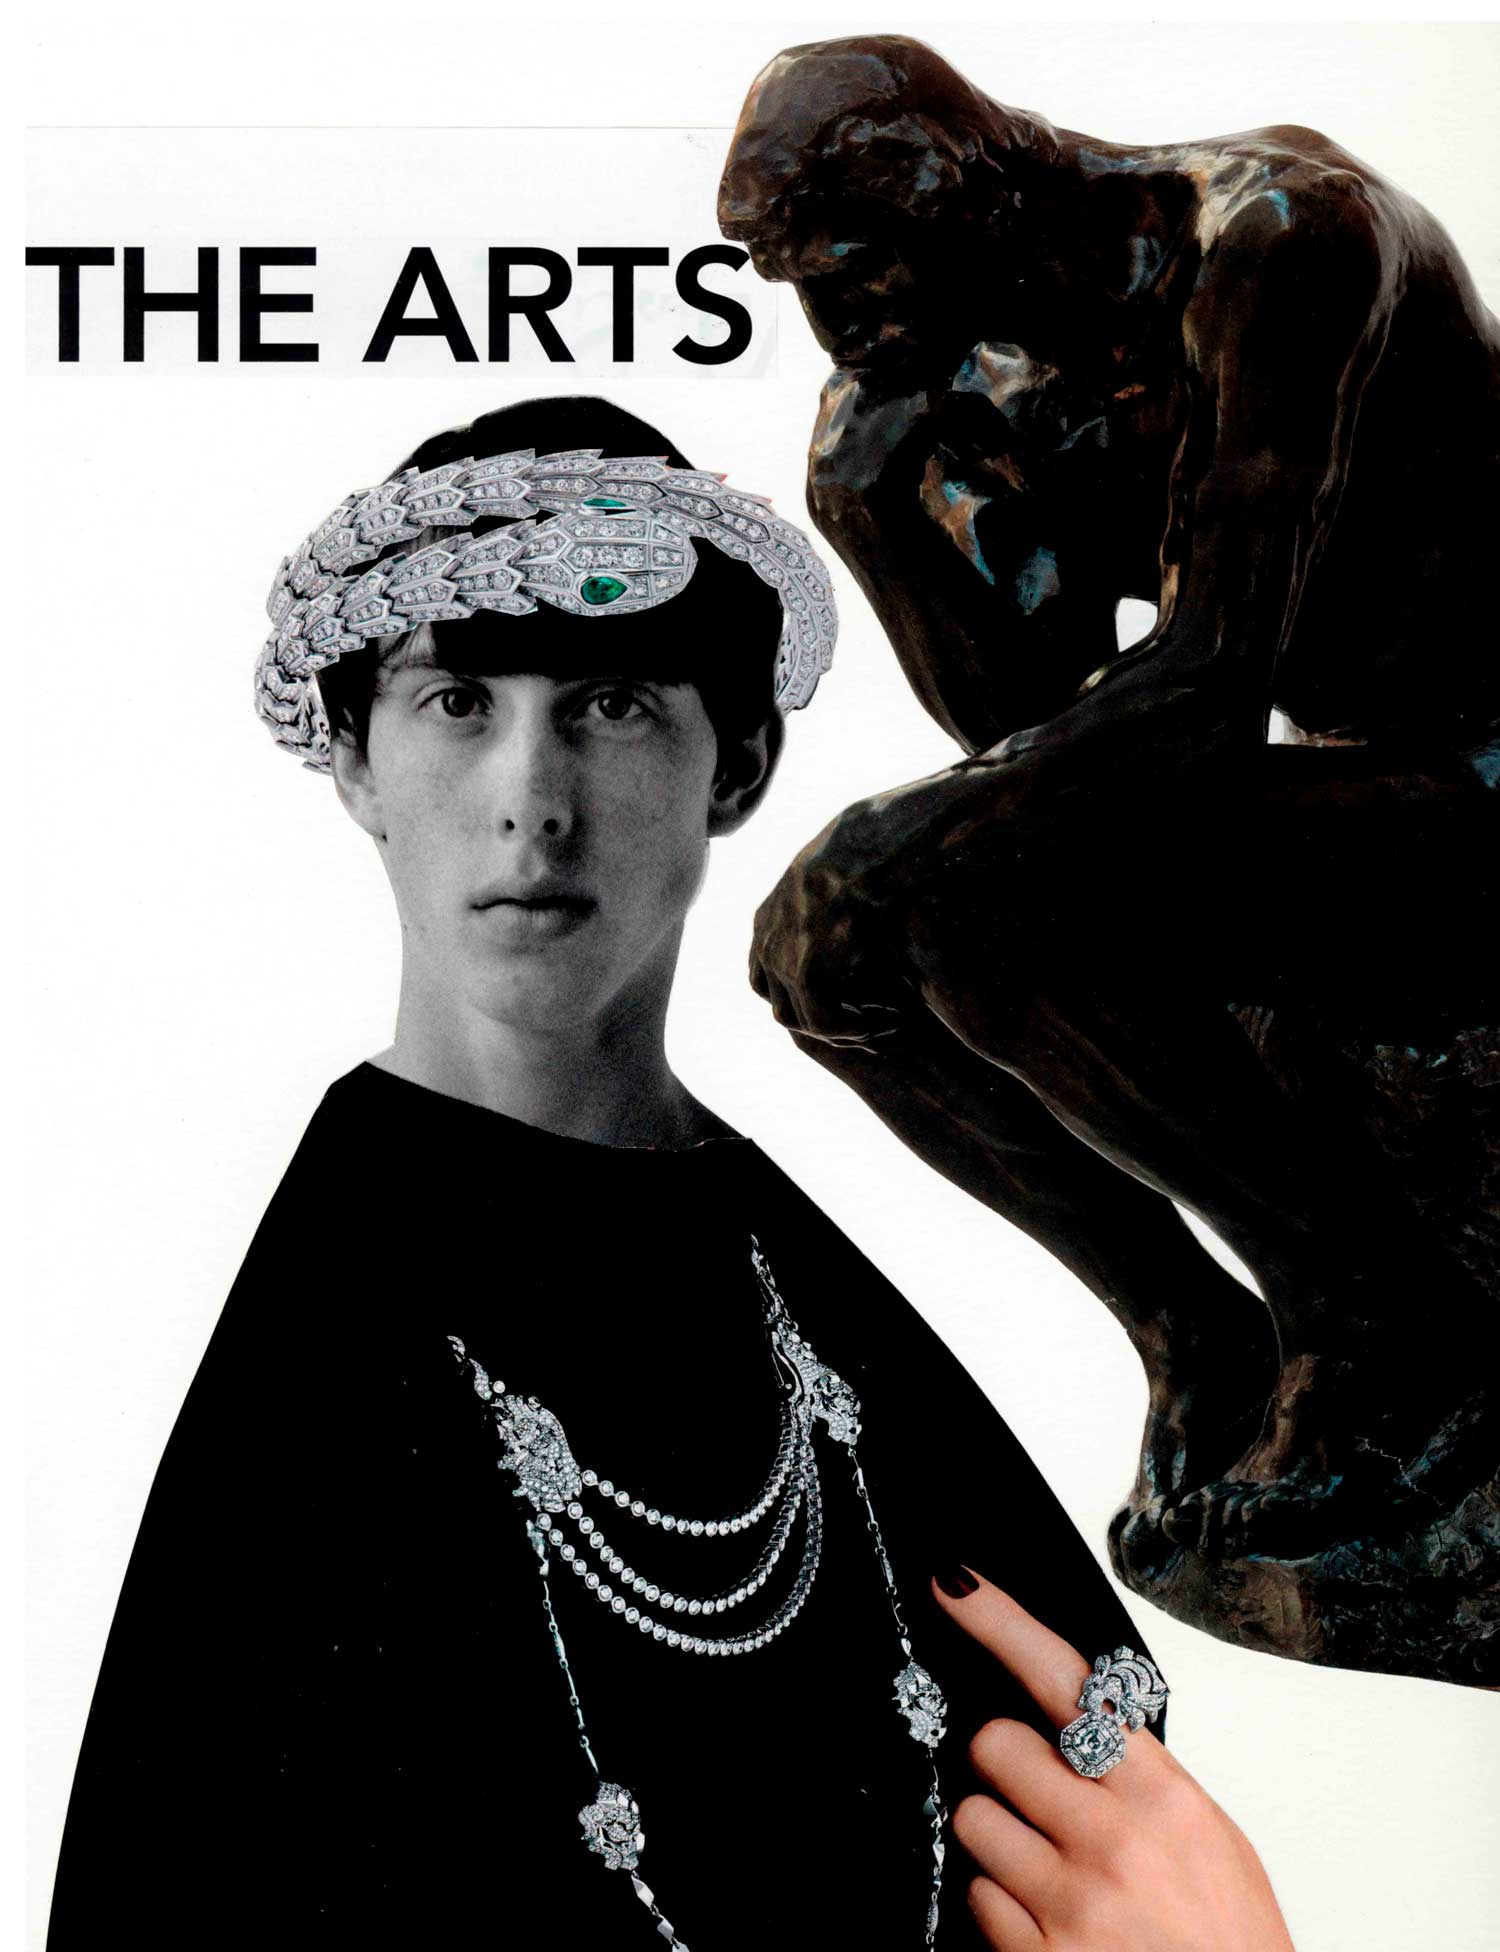 The Arts - © Jeanette Weston